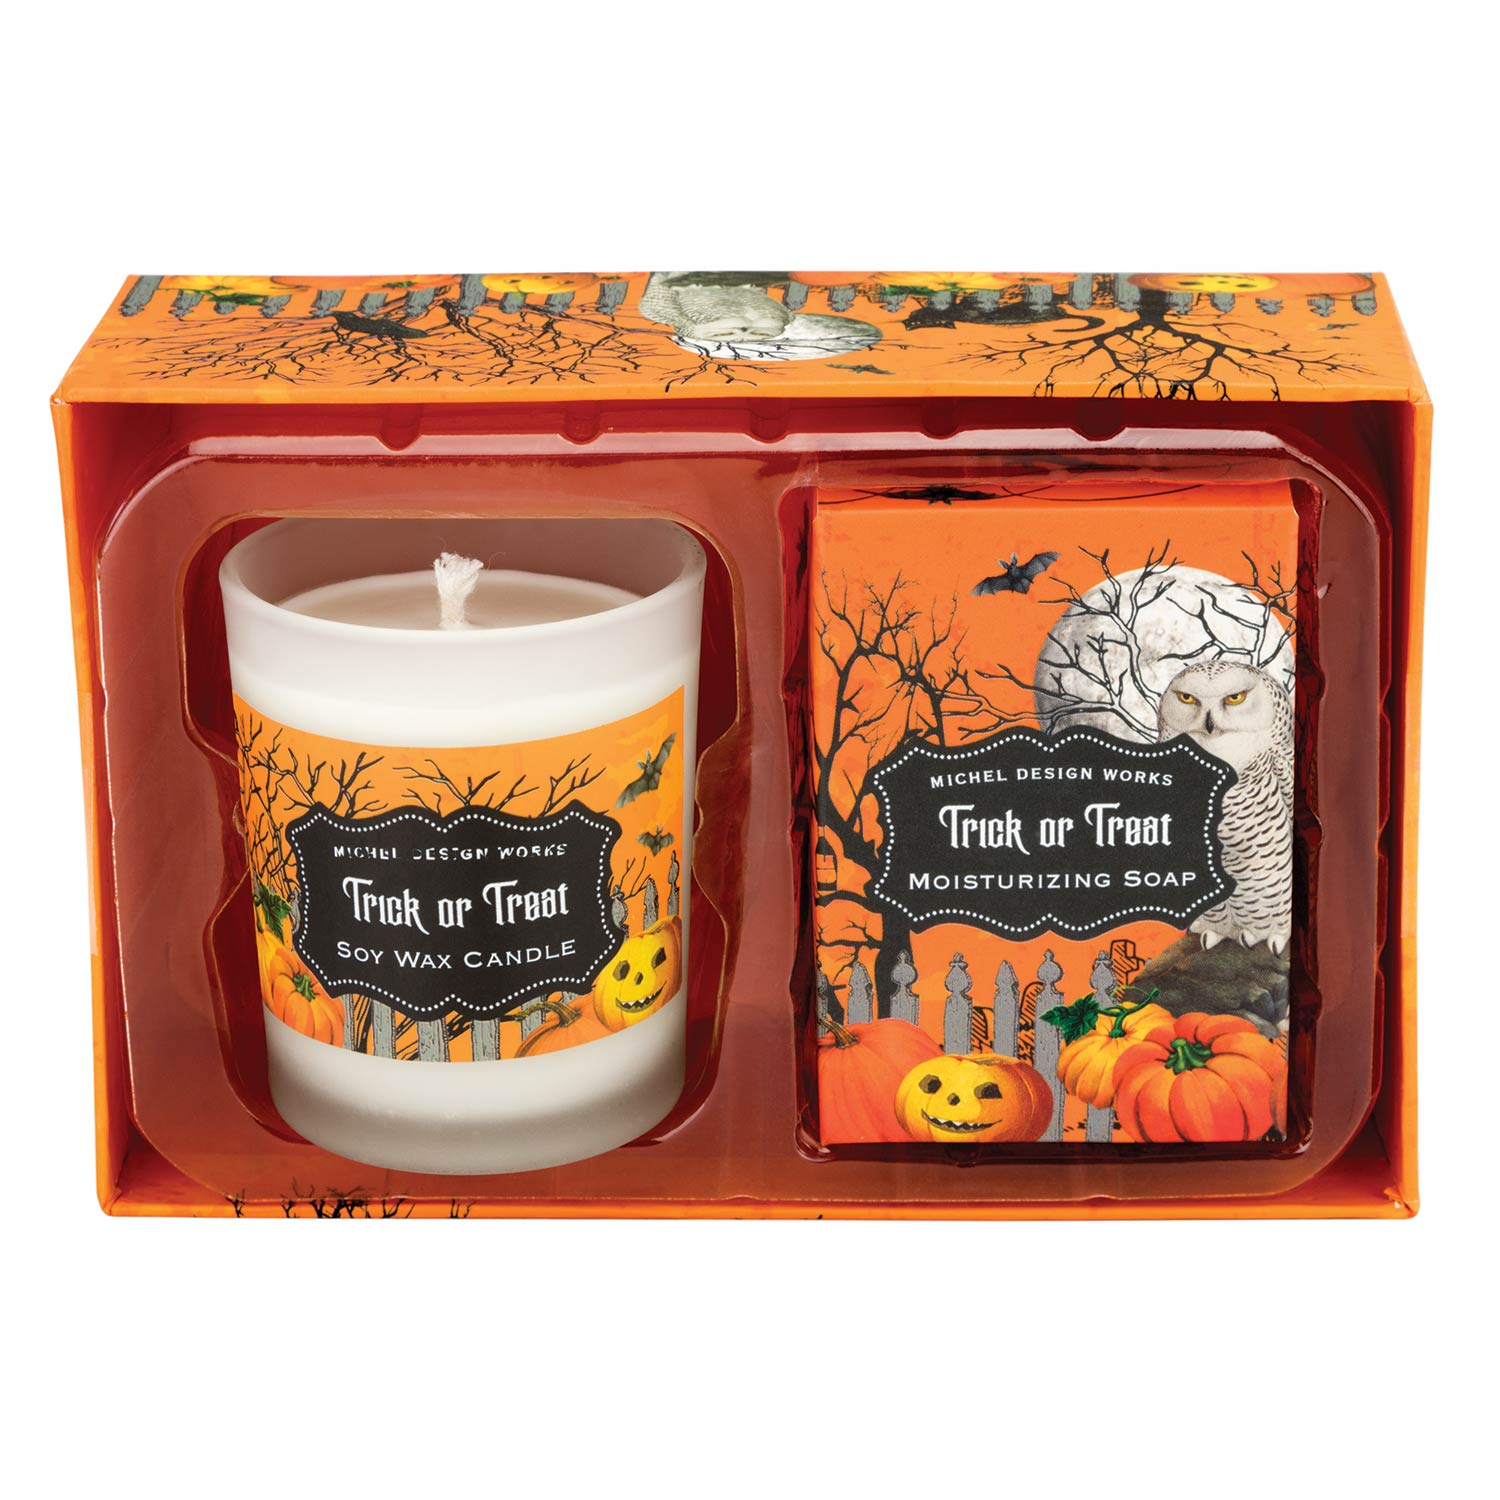 Michel Design Works Candle Amp Soap Gift Sets Trick Or Treat